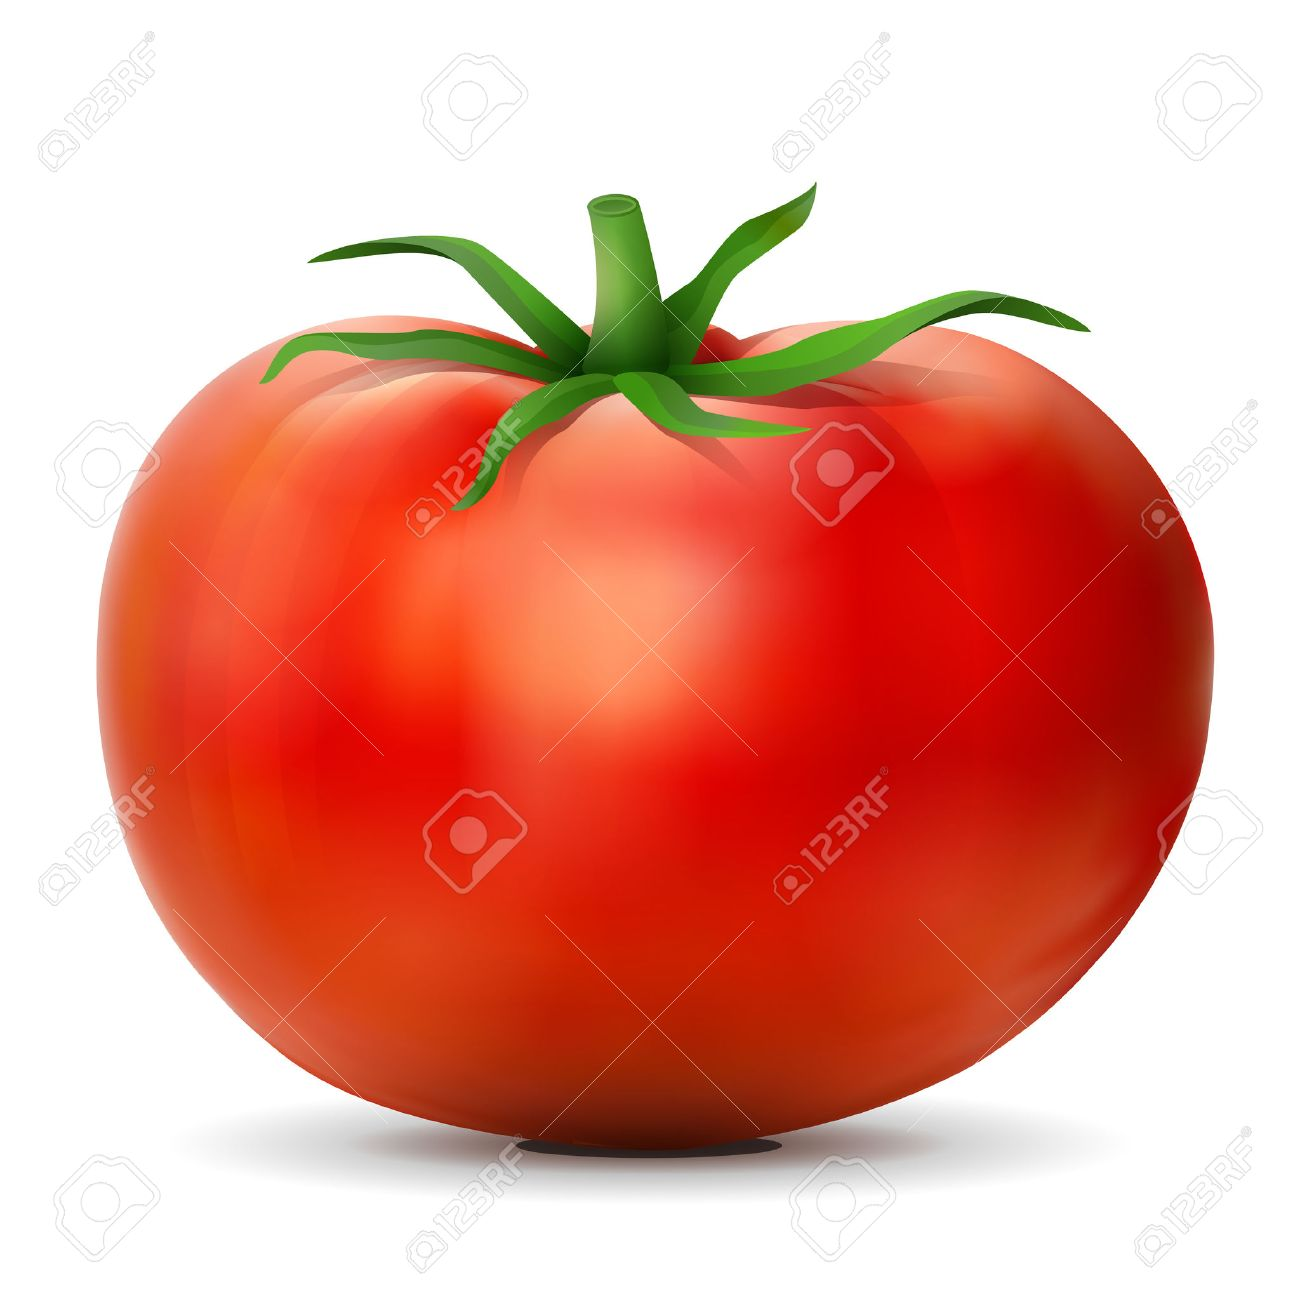 53,167 Tomato Stock Vector Illustration And Royalty Free Tomato ...